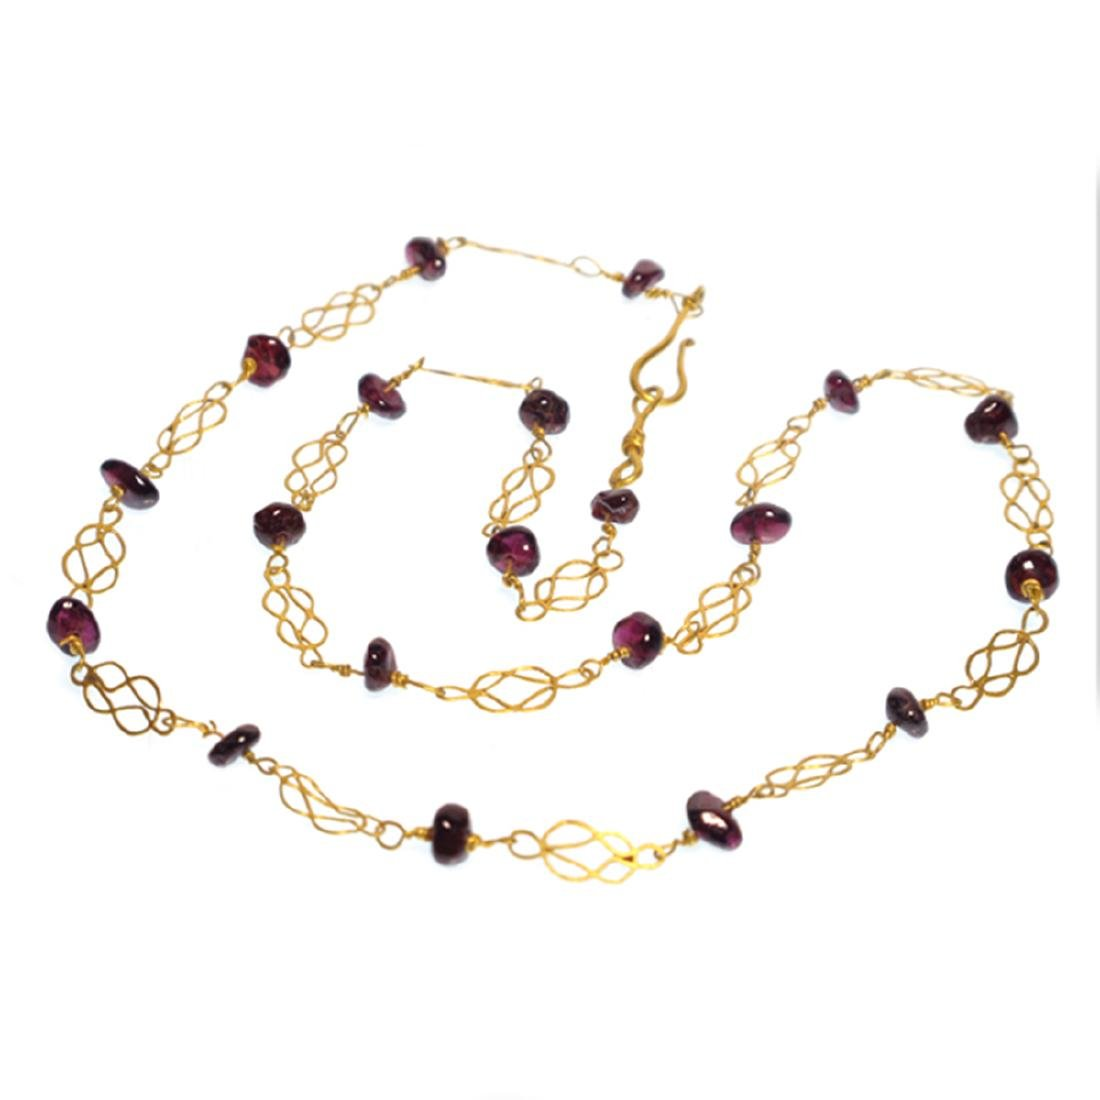 Roman Gold and Garnets Necklace, 3rd-4th Century A.D. - 3